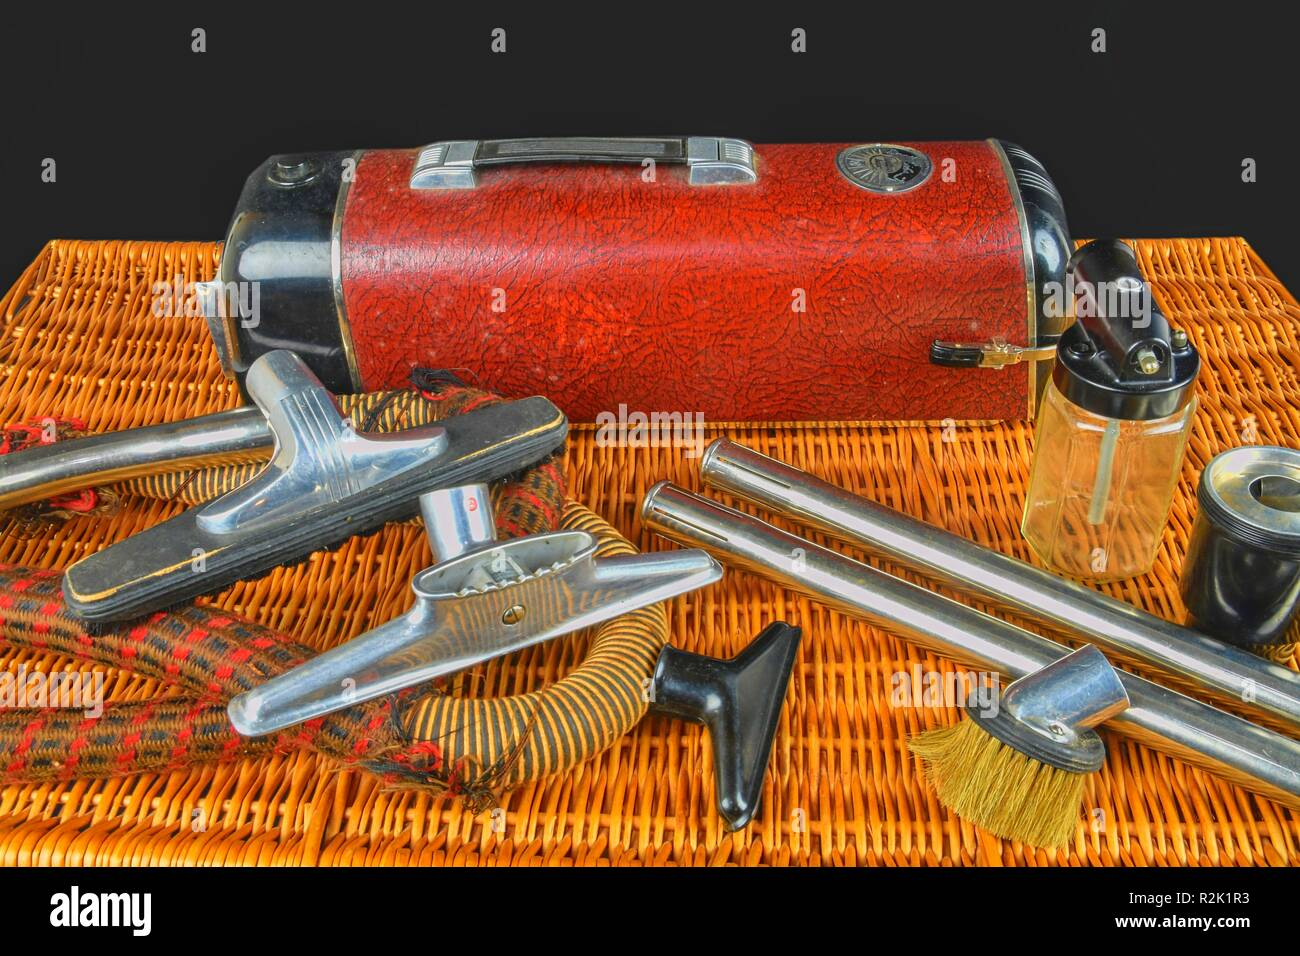 HUSTOPECE, THE CZECH REPUBLIC - NOVEMBER 12, 2018: Vintage vacuum cleaner Electrolux. Electrolux is famous brand from Sweden.Very popular all over the - Stock Image